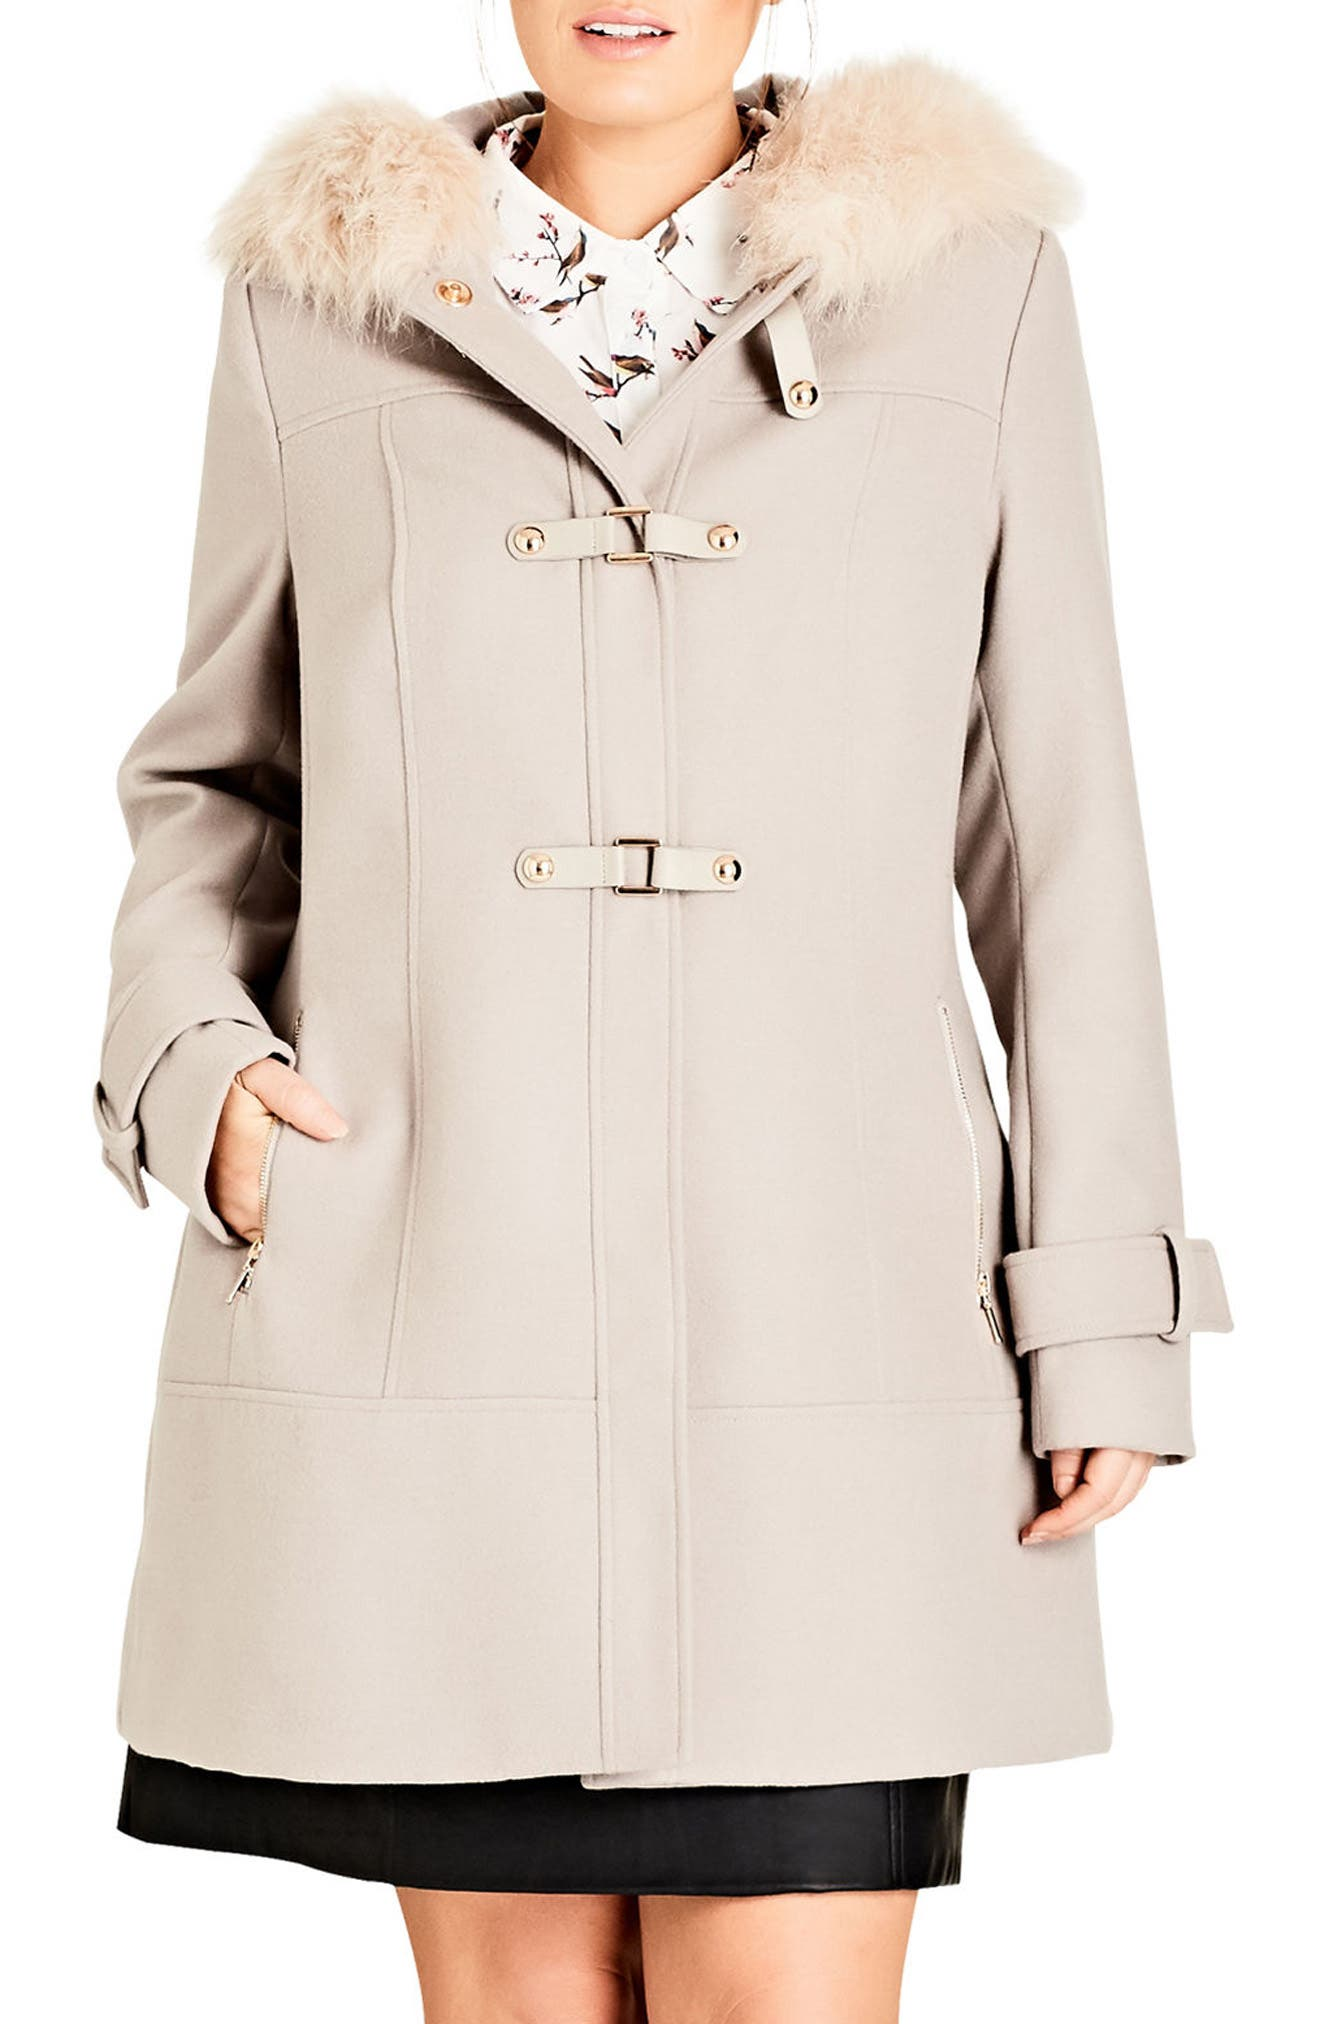 Main Image - City Chic Wonderland Peacoat with Faux Fur Trim (Plus Size)